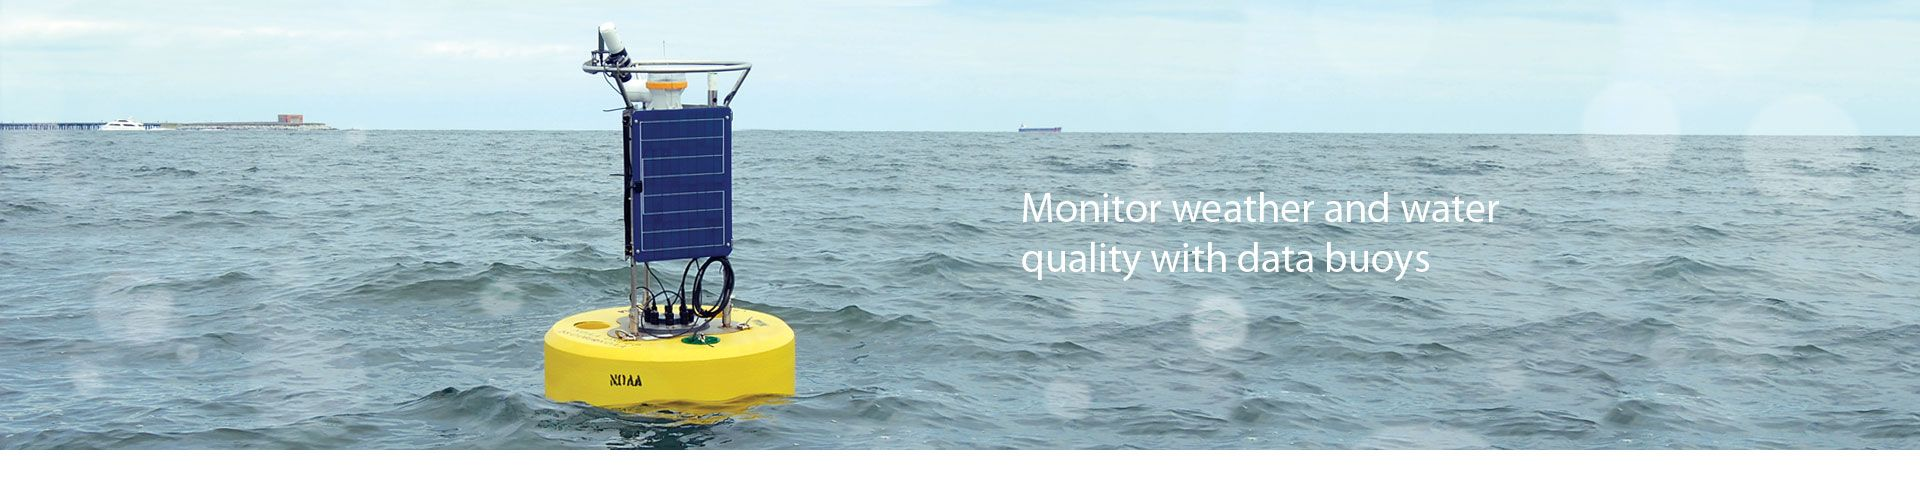 NexSens CB-950 Data Buoy